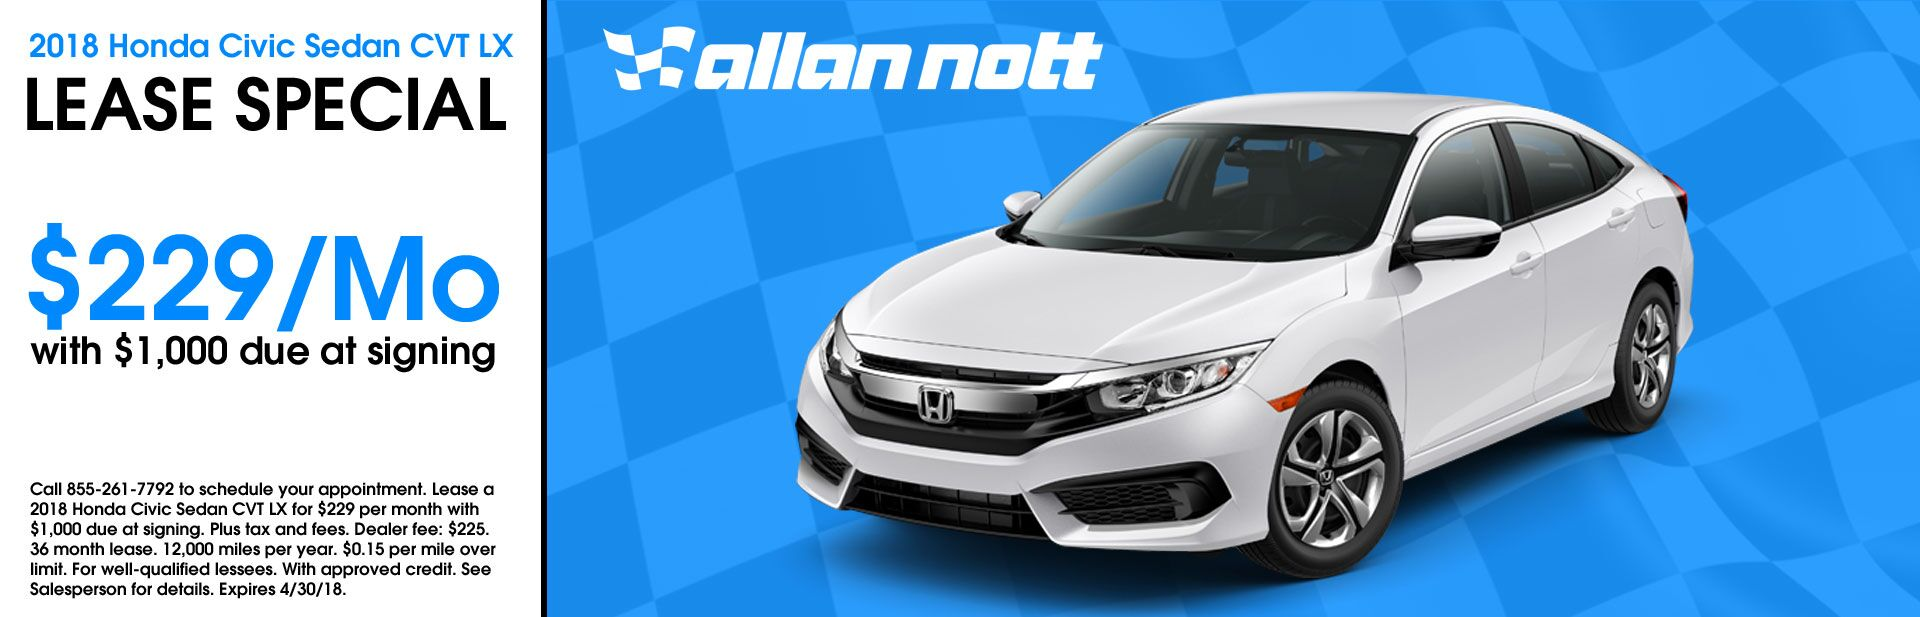 April 2018 - 2018 Honda Civic Sedan CVT LX Lease Special